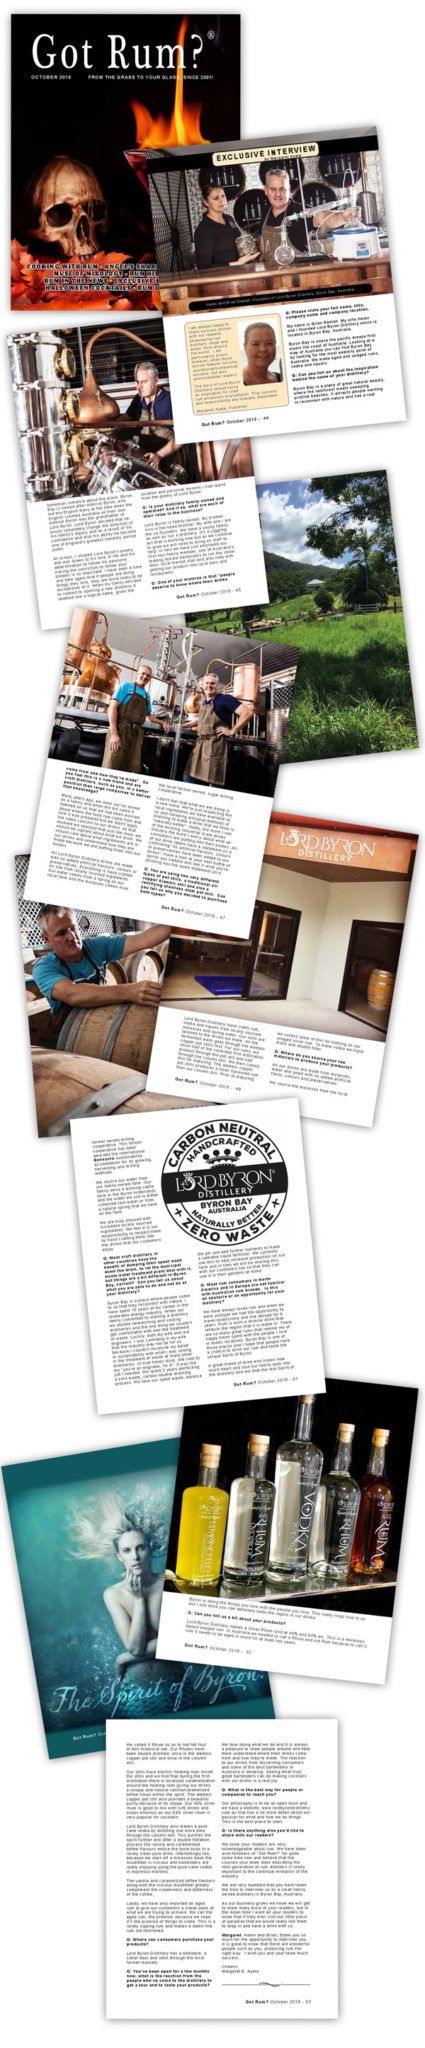 Lord Byron Distillery Got Rum Article